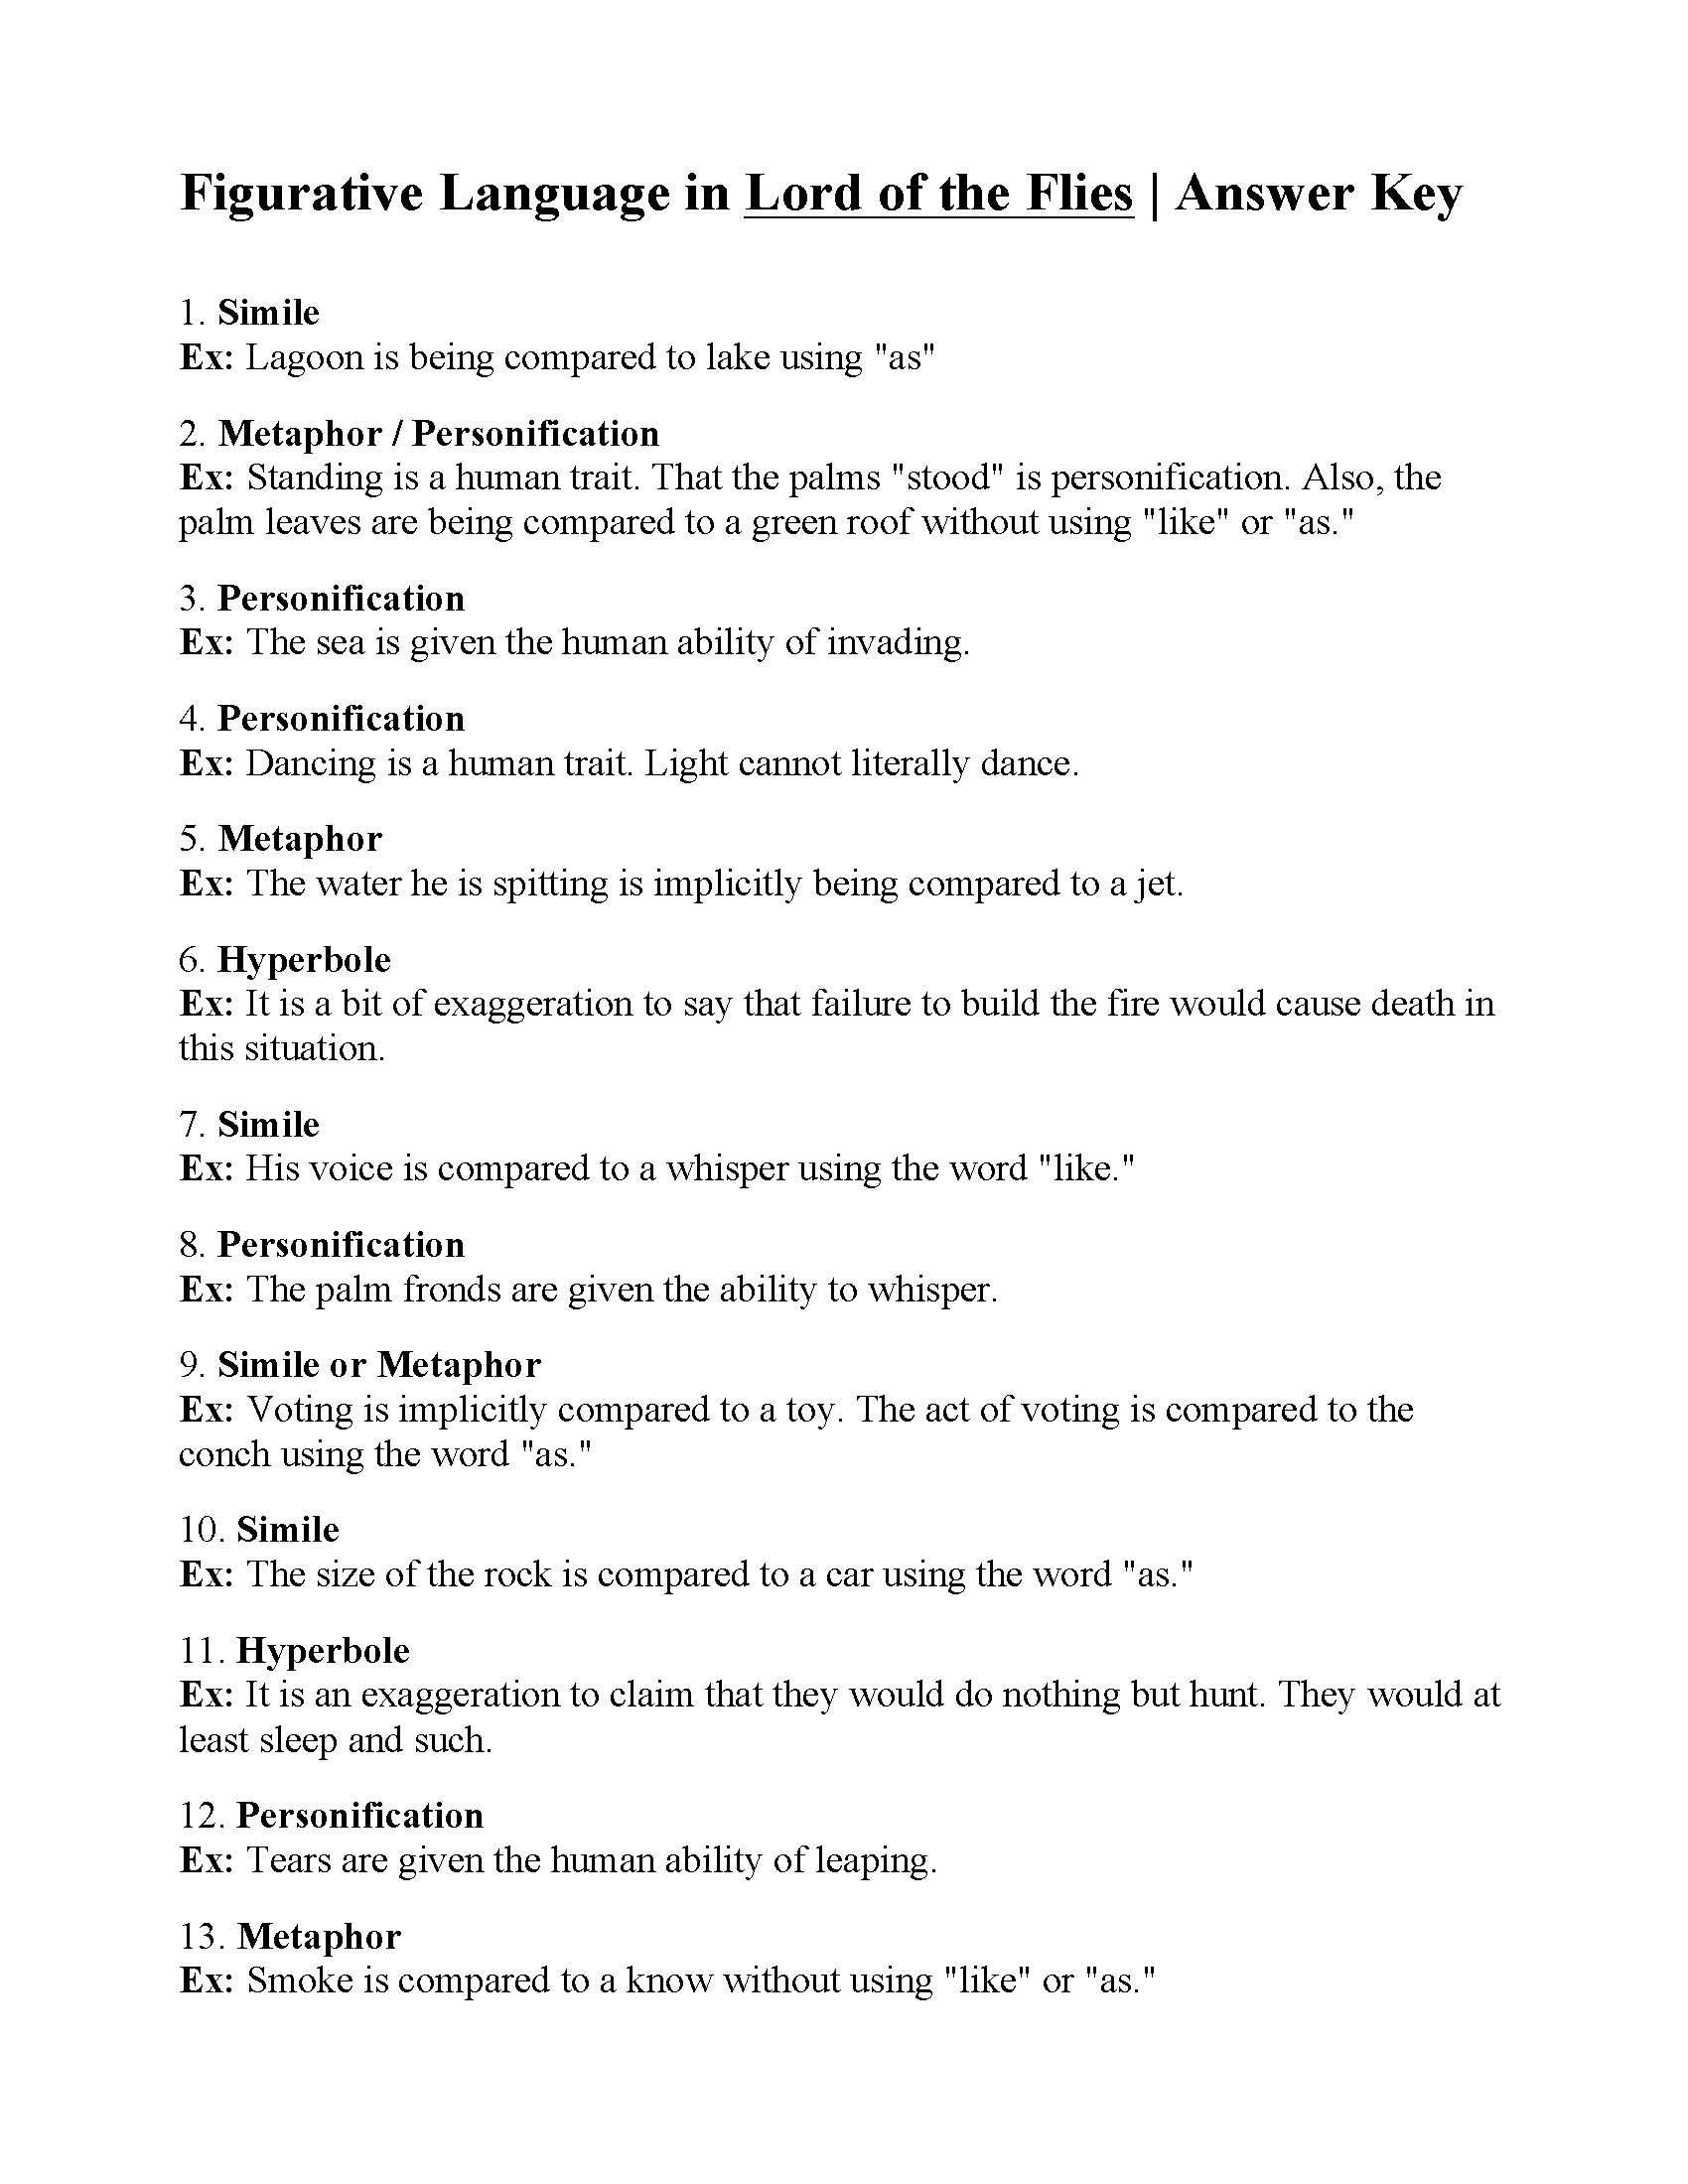 Figurative Language Worksheet High School Figurative Language Worksheet Lord Of the Flies